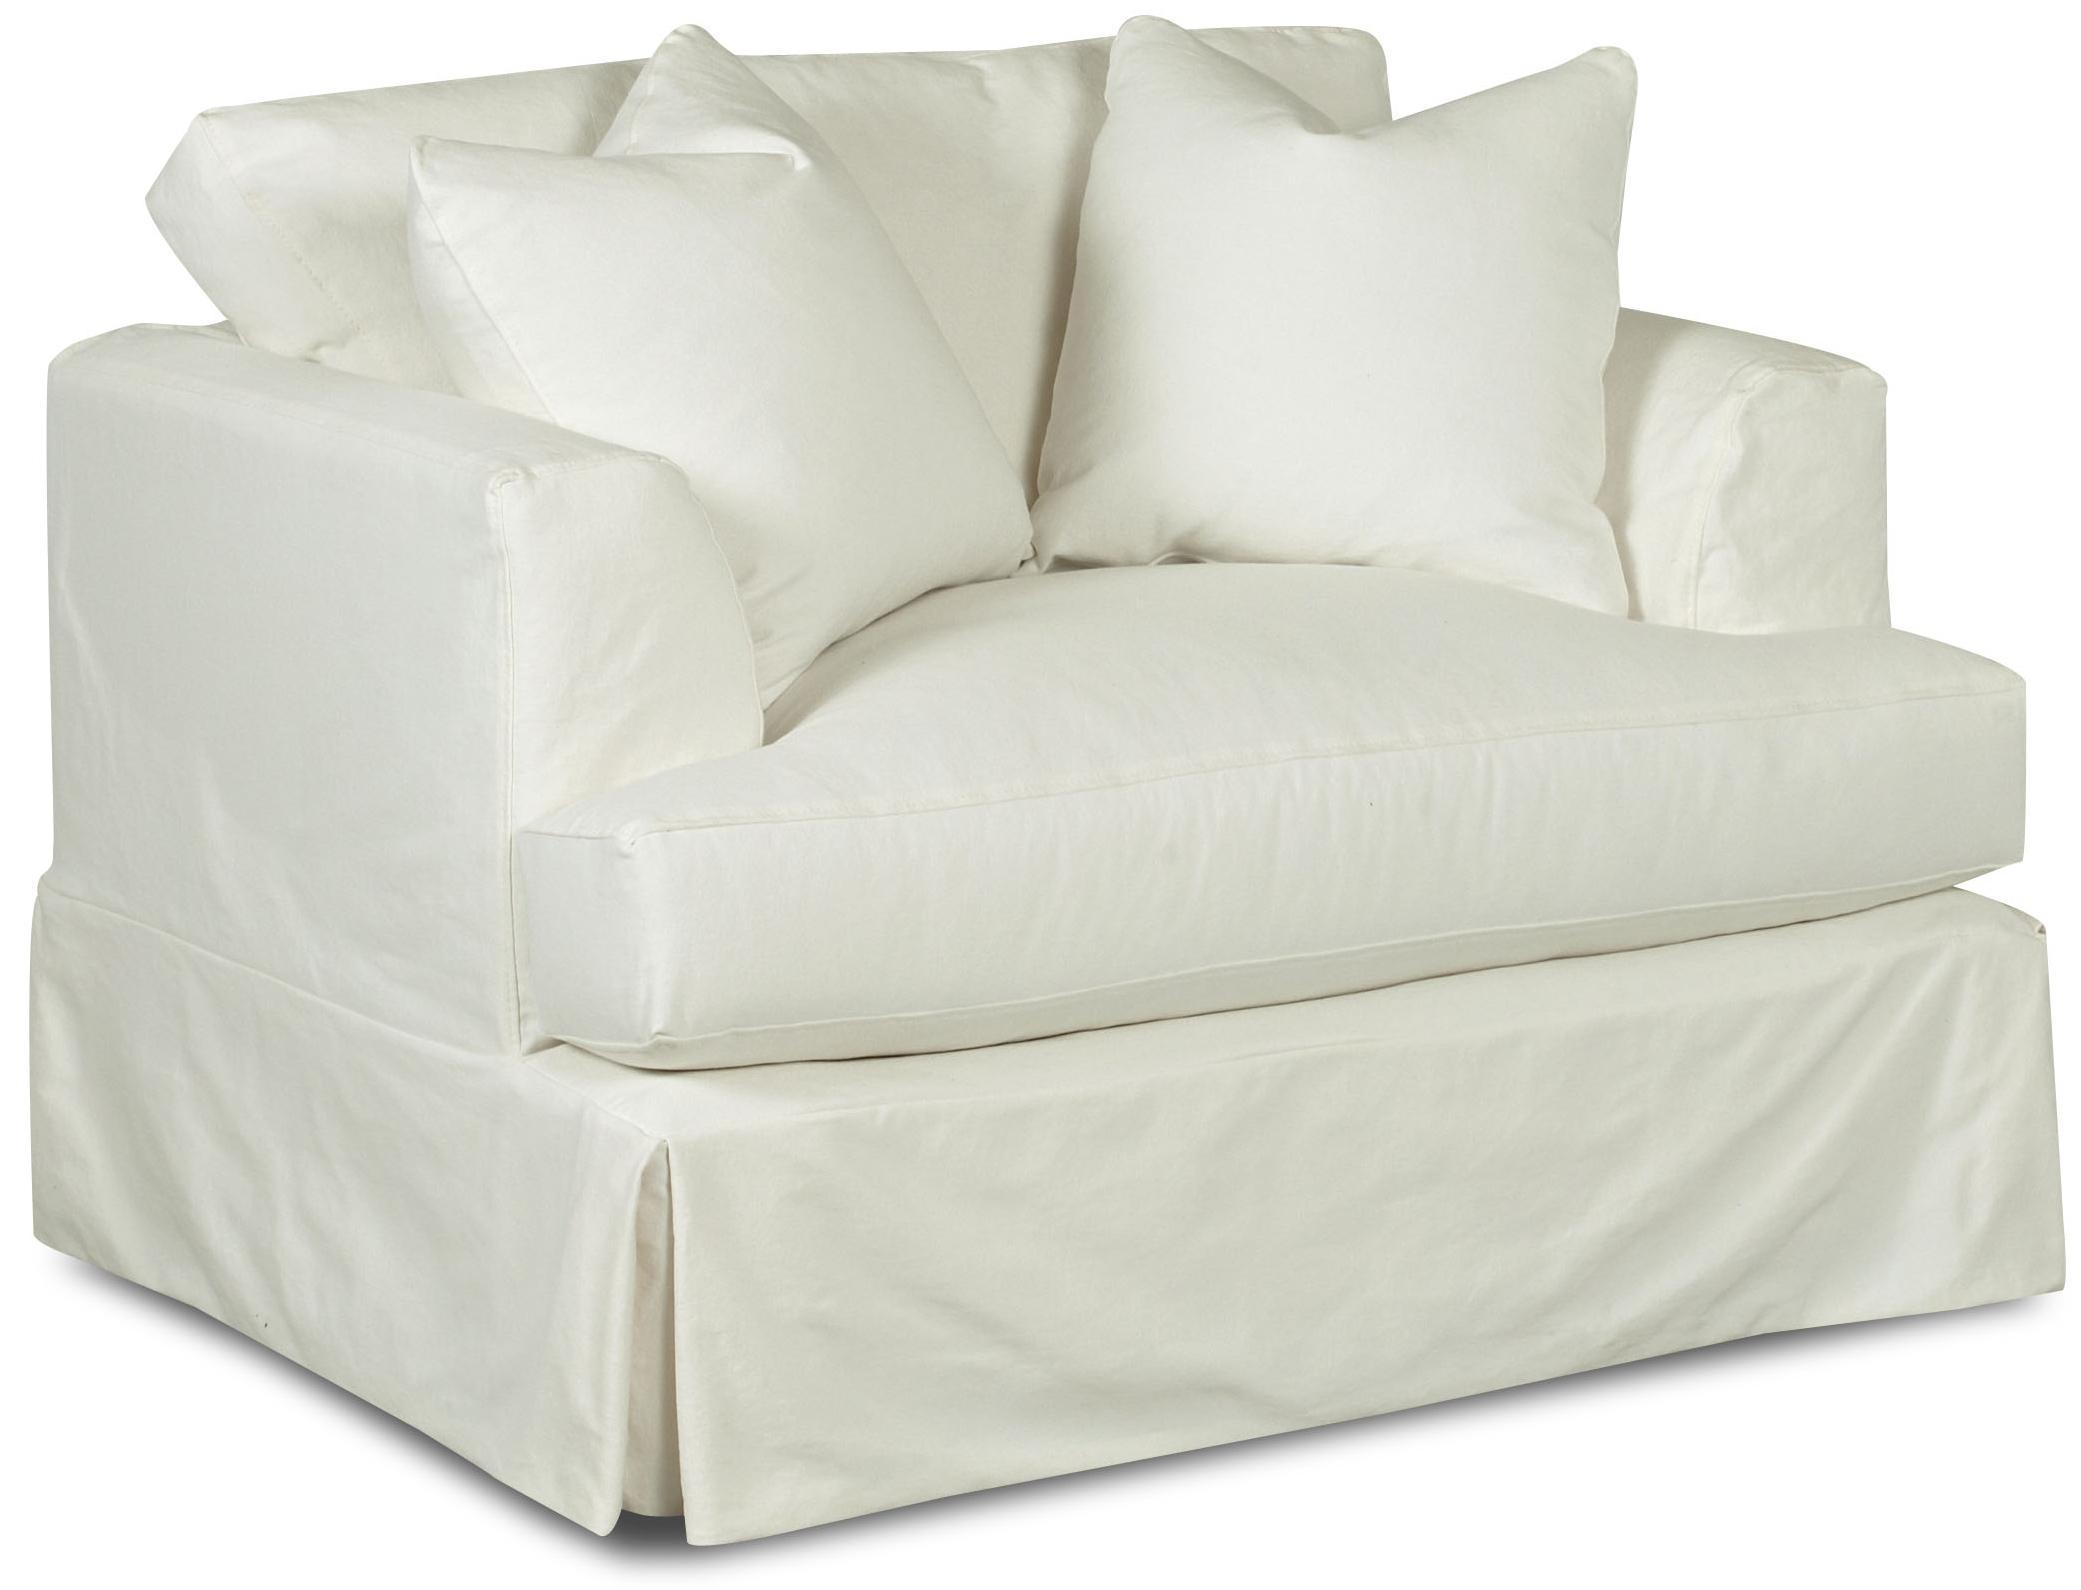 Slip Covers Chair And Quality Interiors | Sofa Slipcover | Chair Inside Sofa And Chair Slipcovers (View 6 of 20)